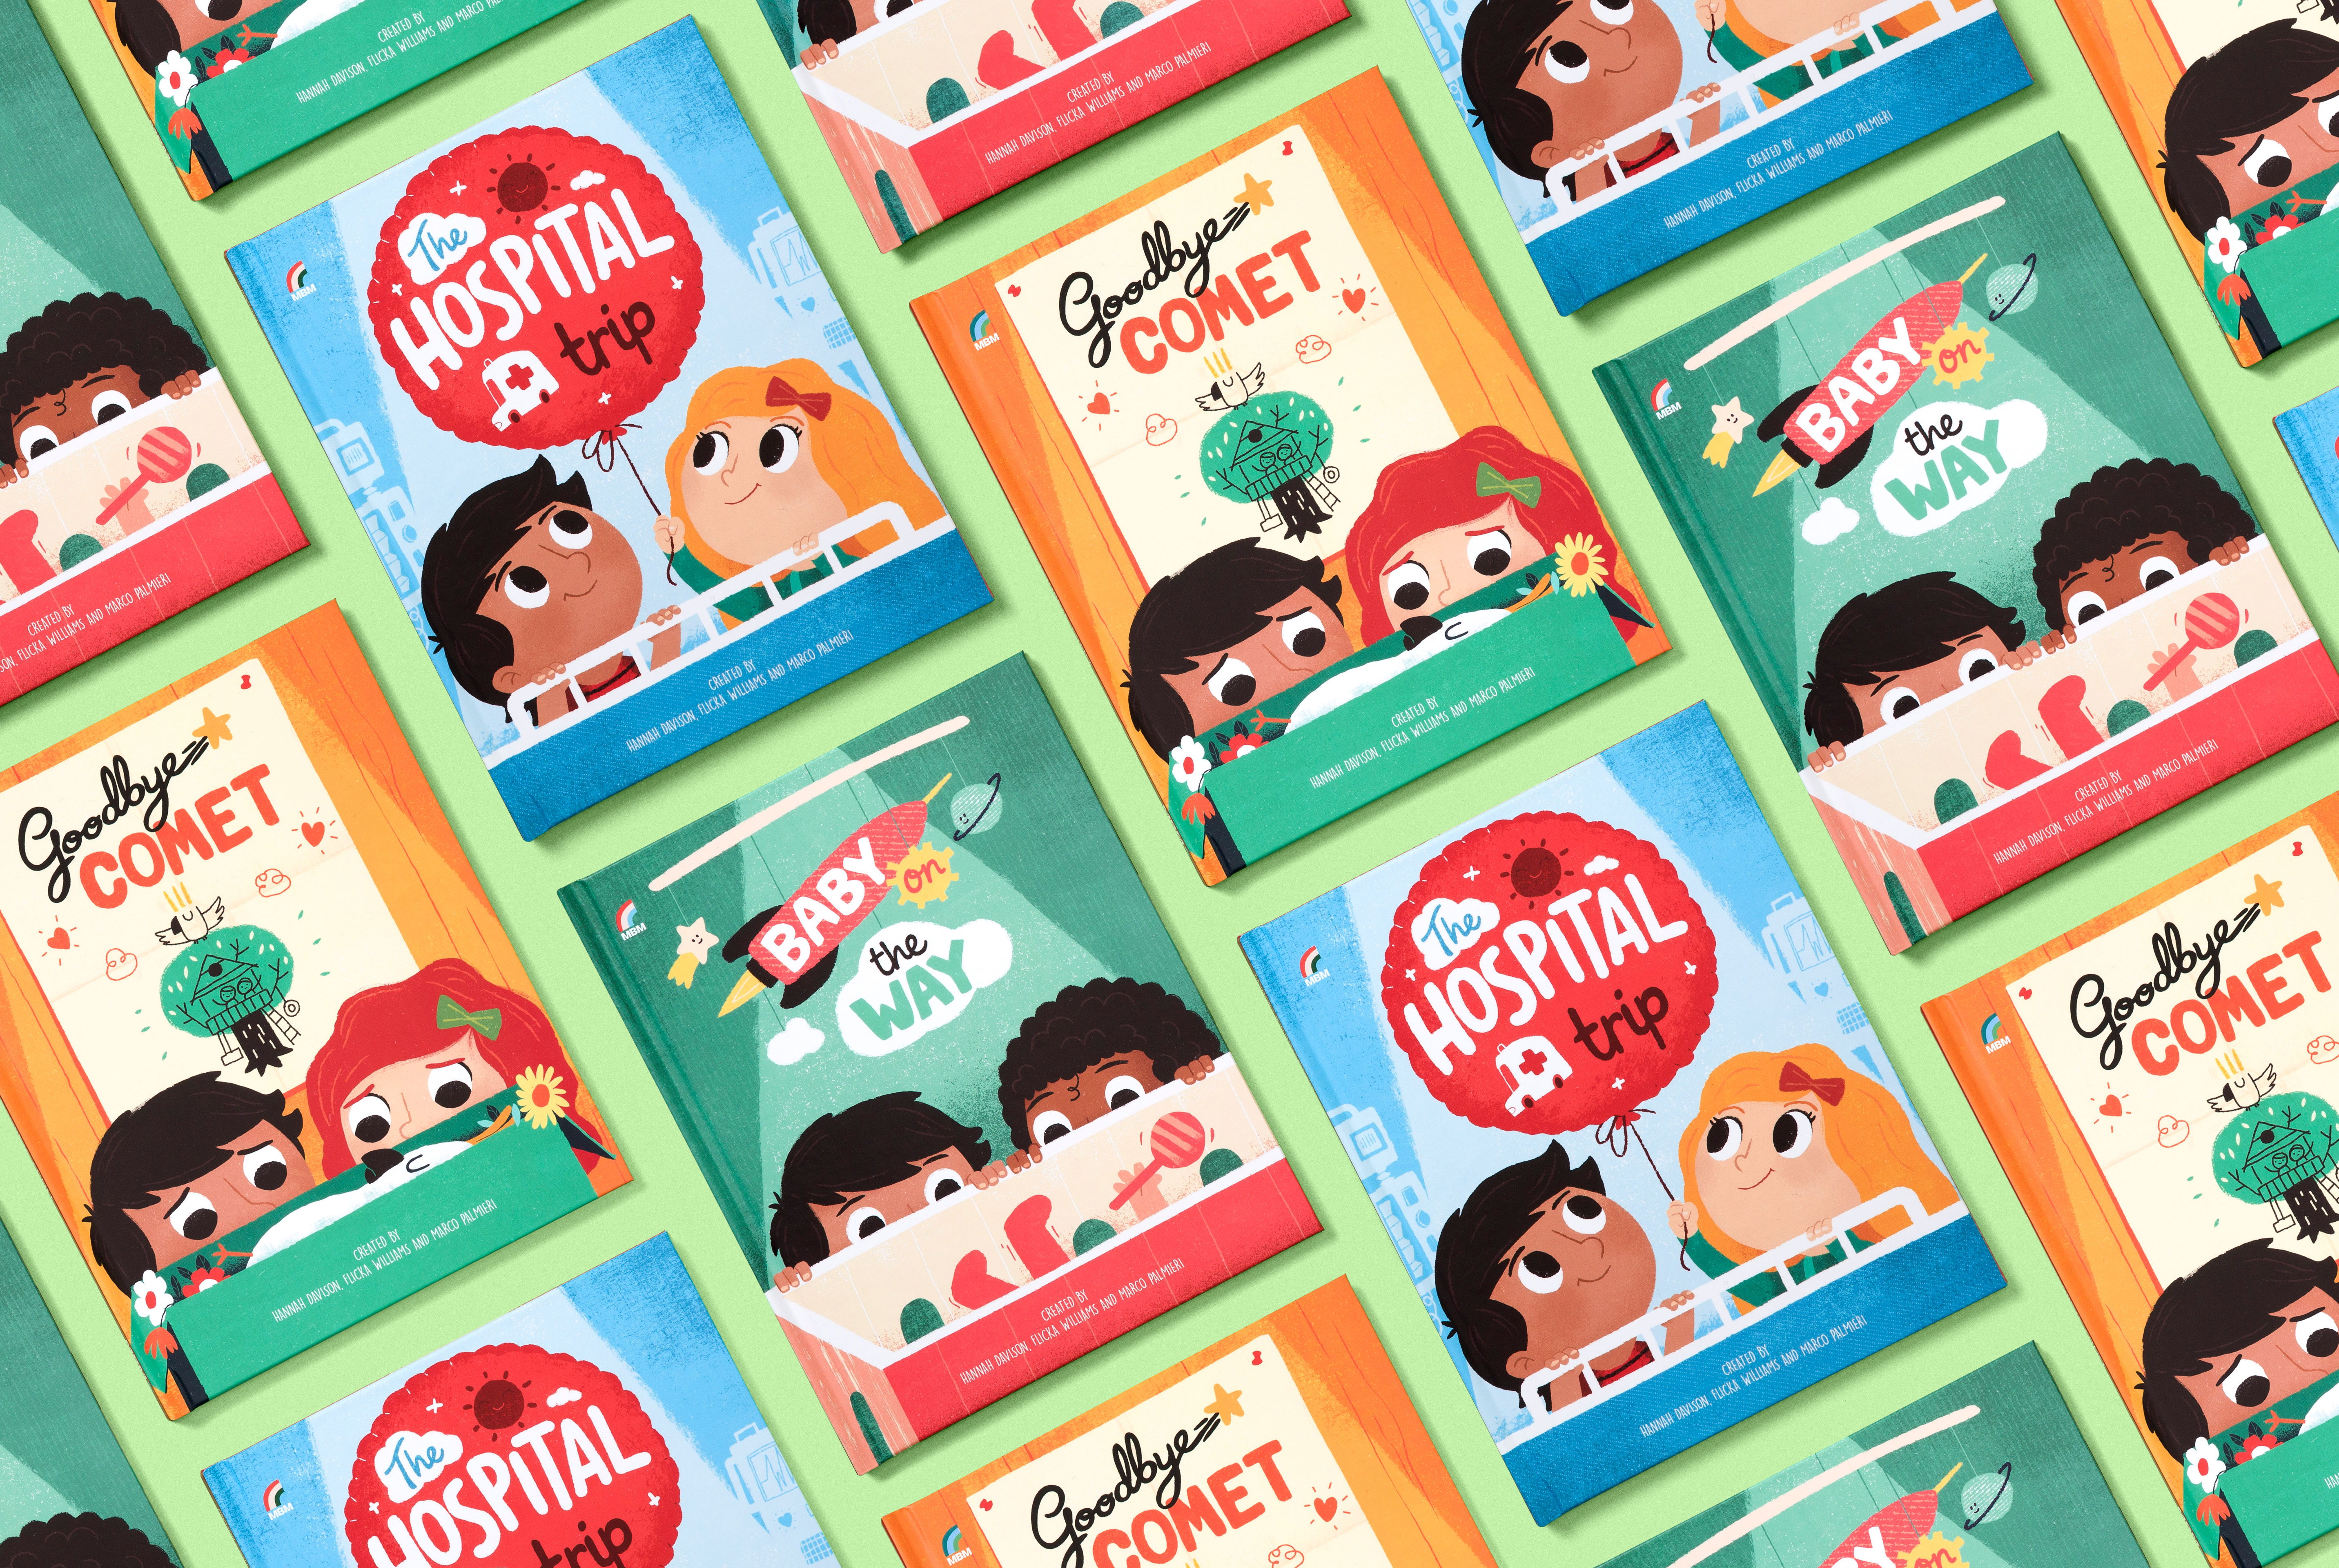 The Personalised Picture Books Helping Little People Through Big Moments